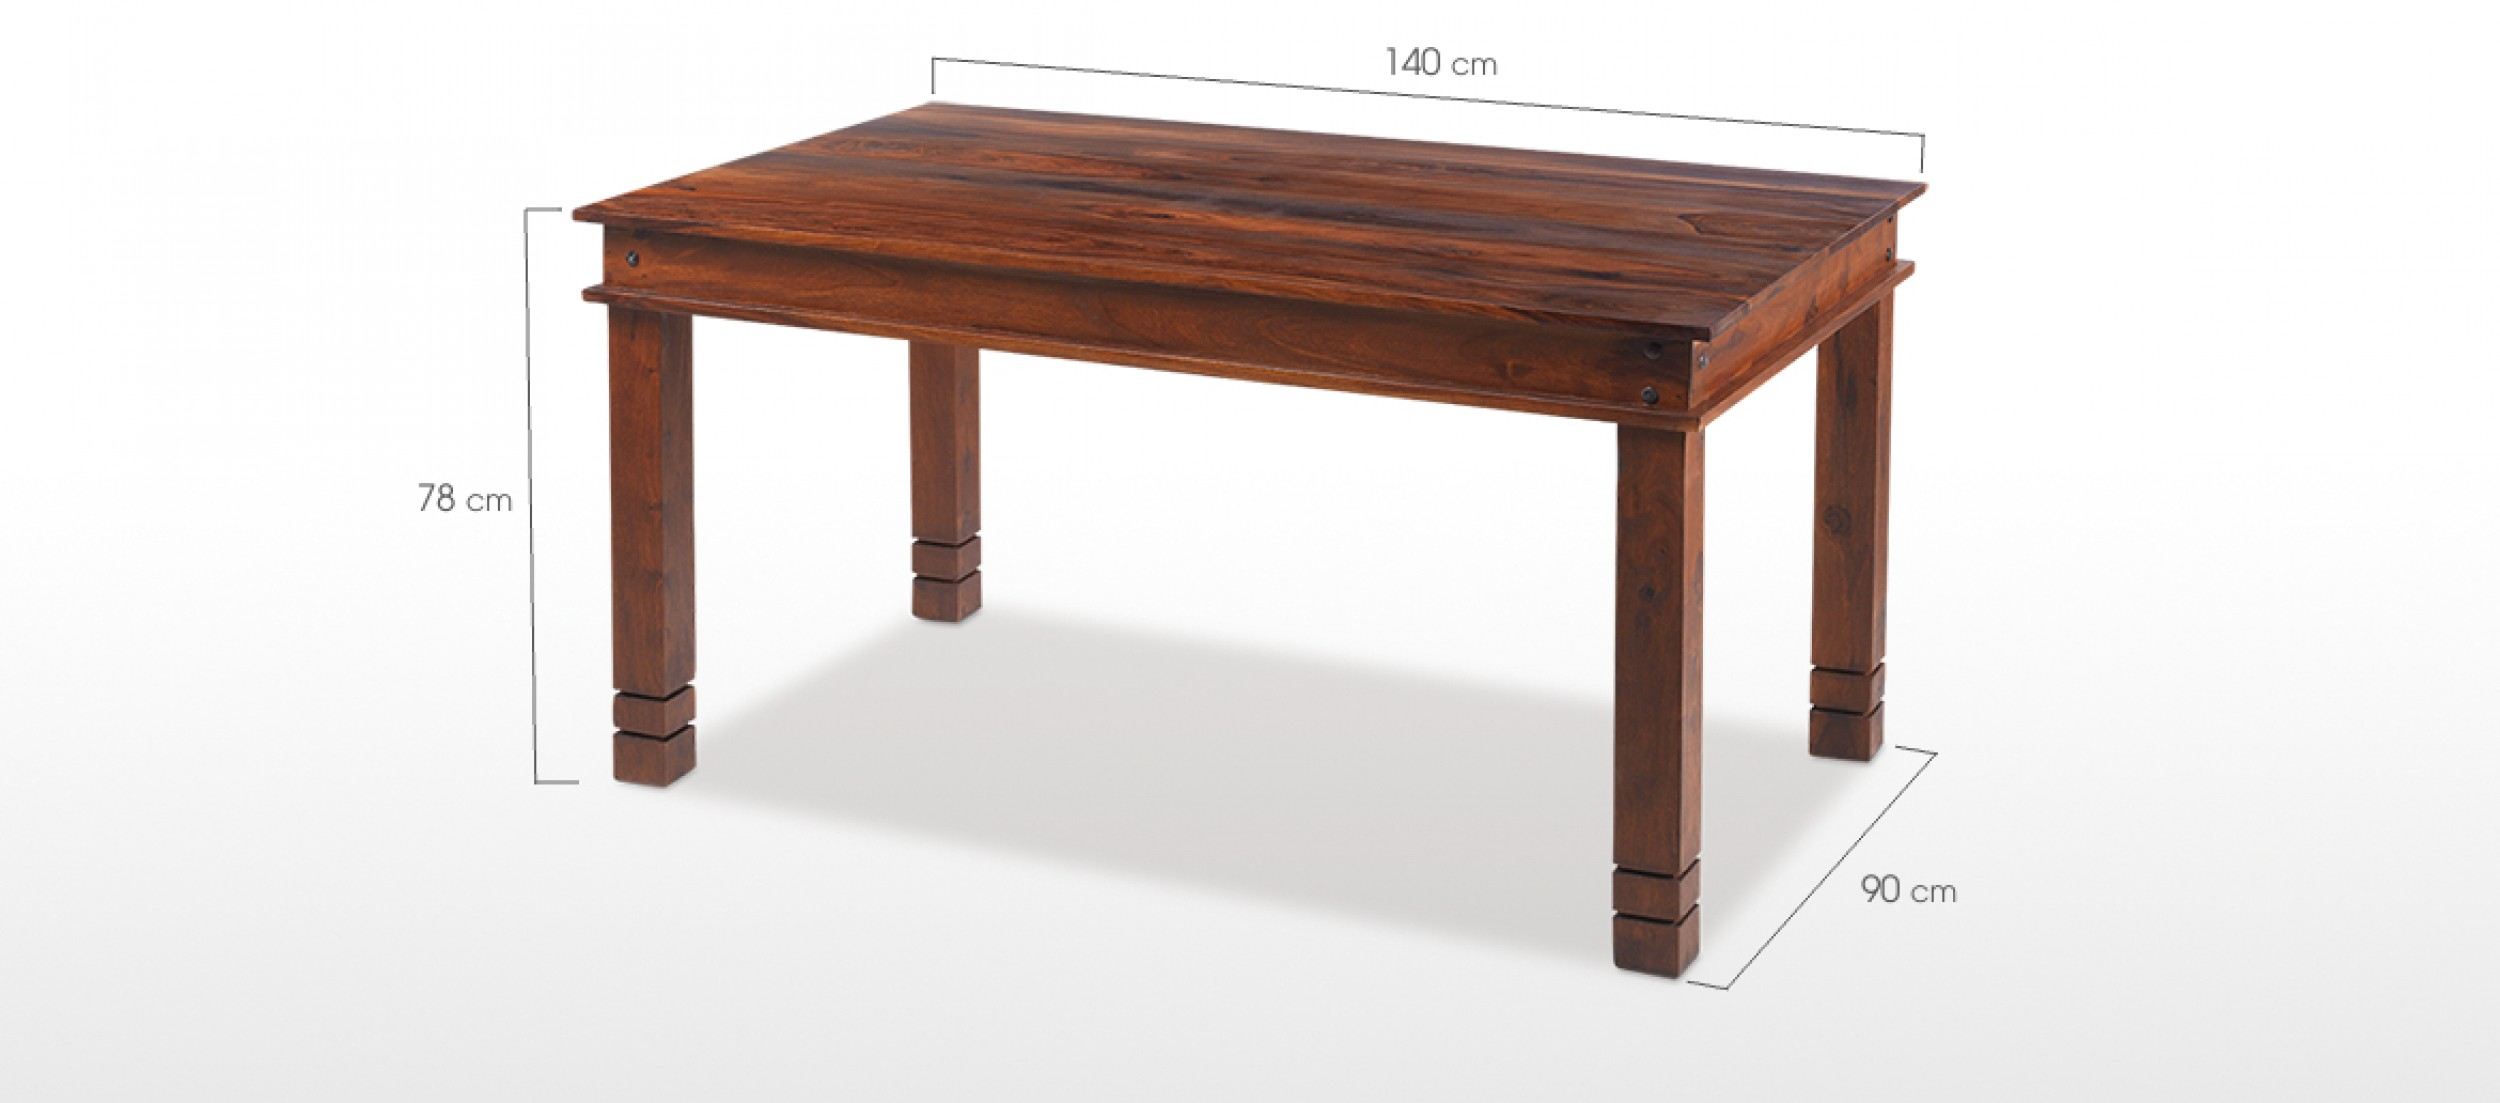 Table 140 Jali Sheesham 140 Cm Chunky Dining Table